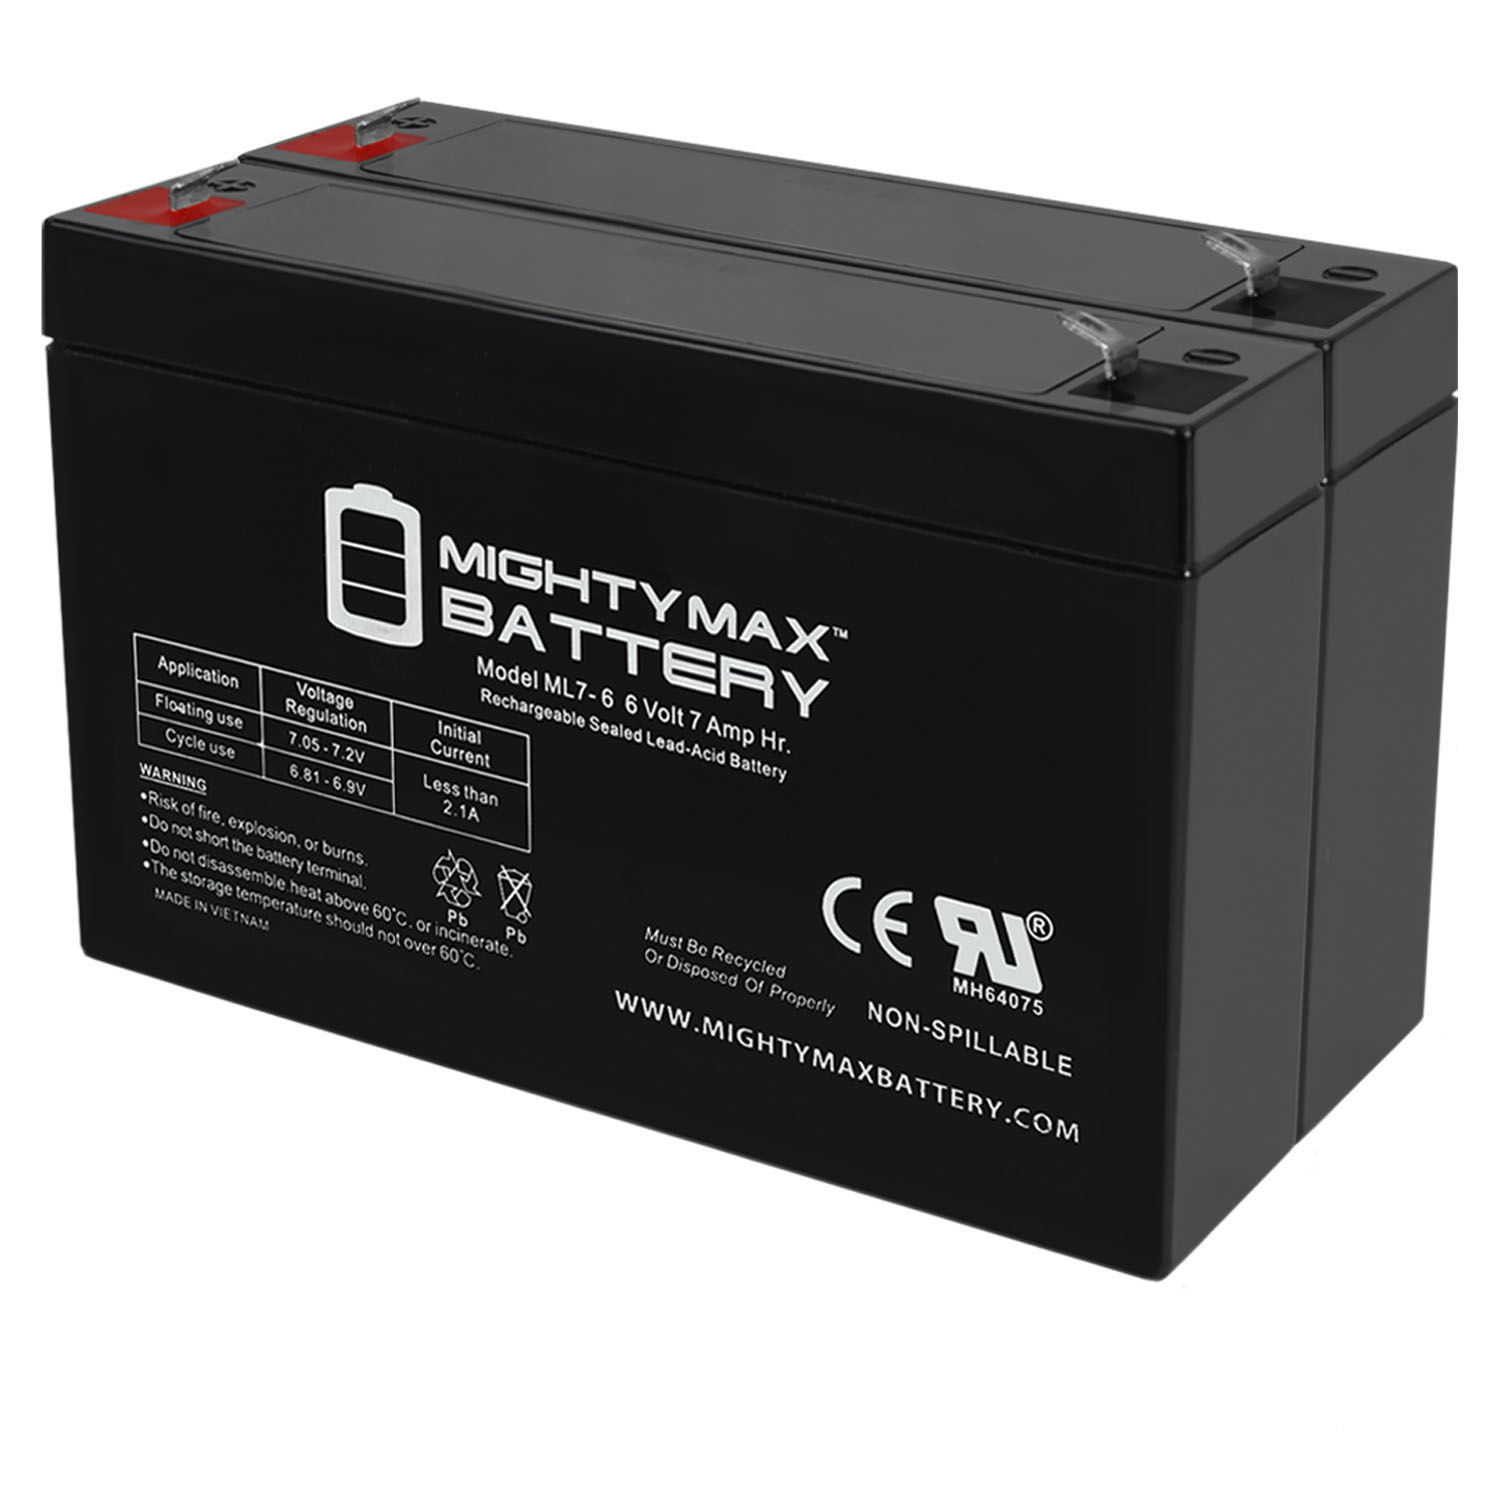 6V 7Ah Battery for Gallagher S17 Solar Fence Charger - 2 Pack